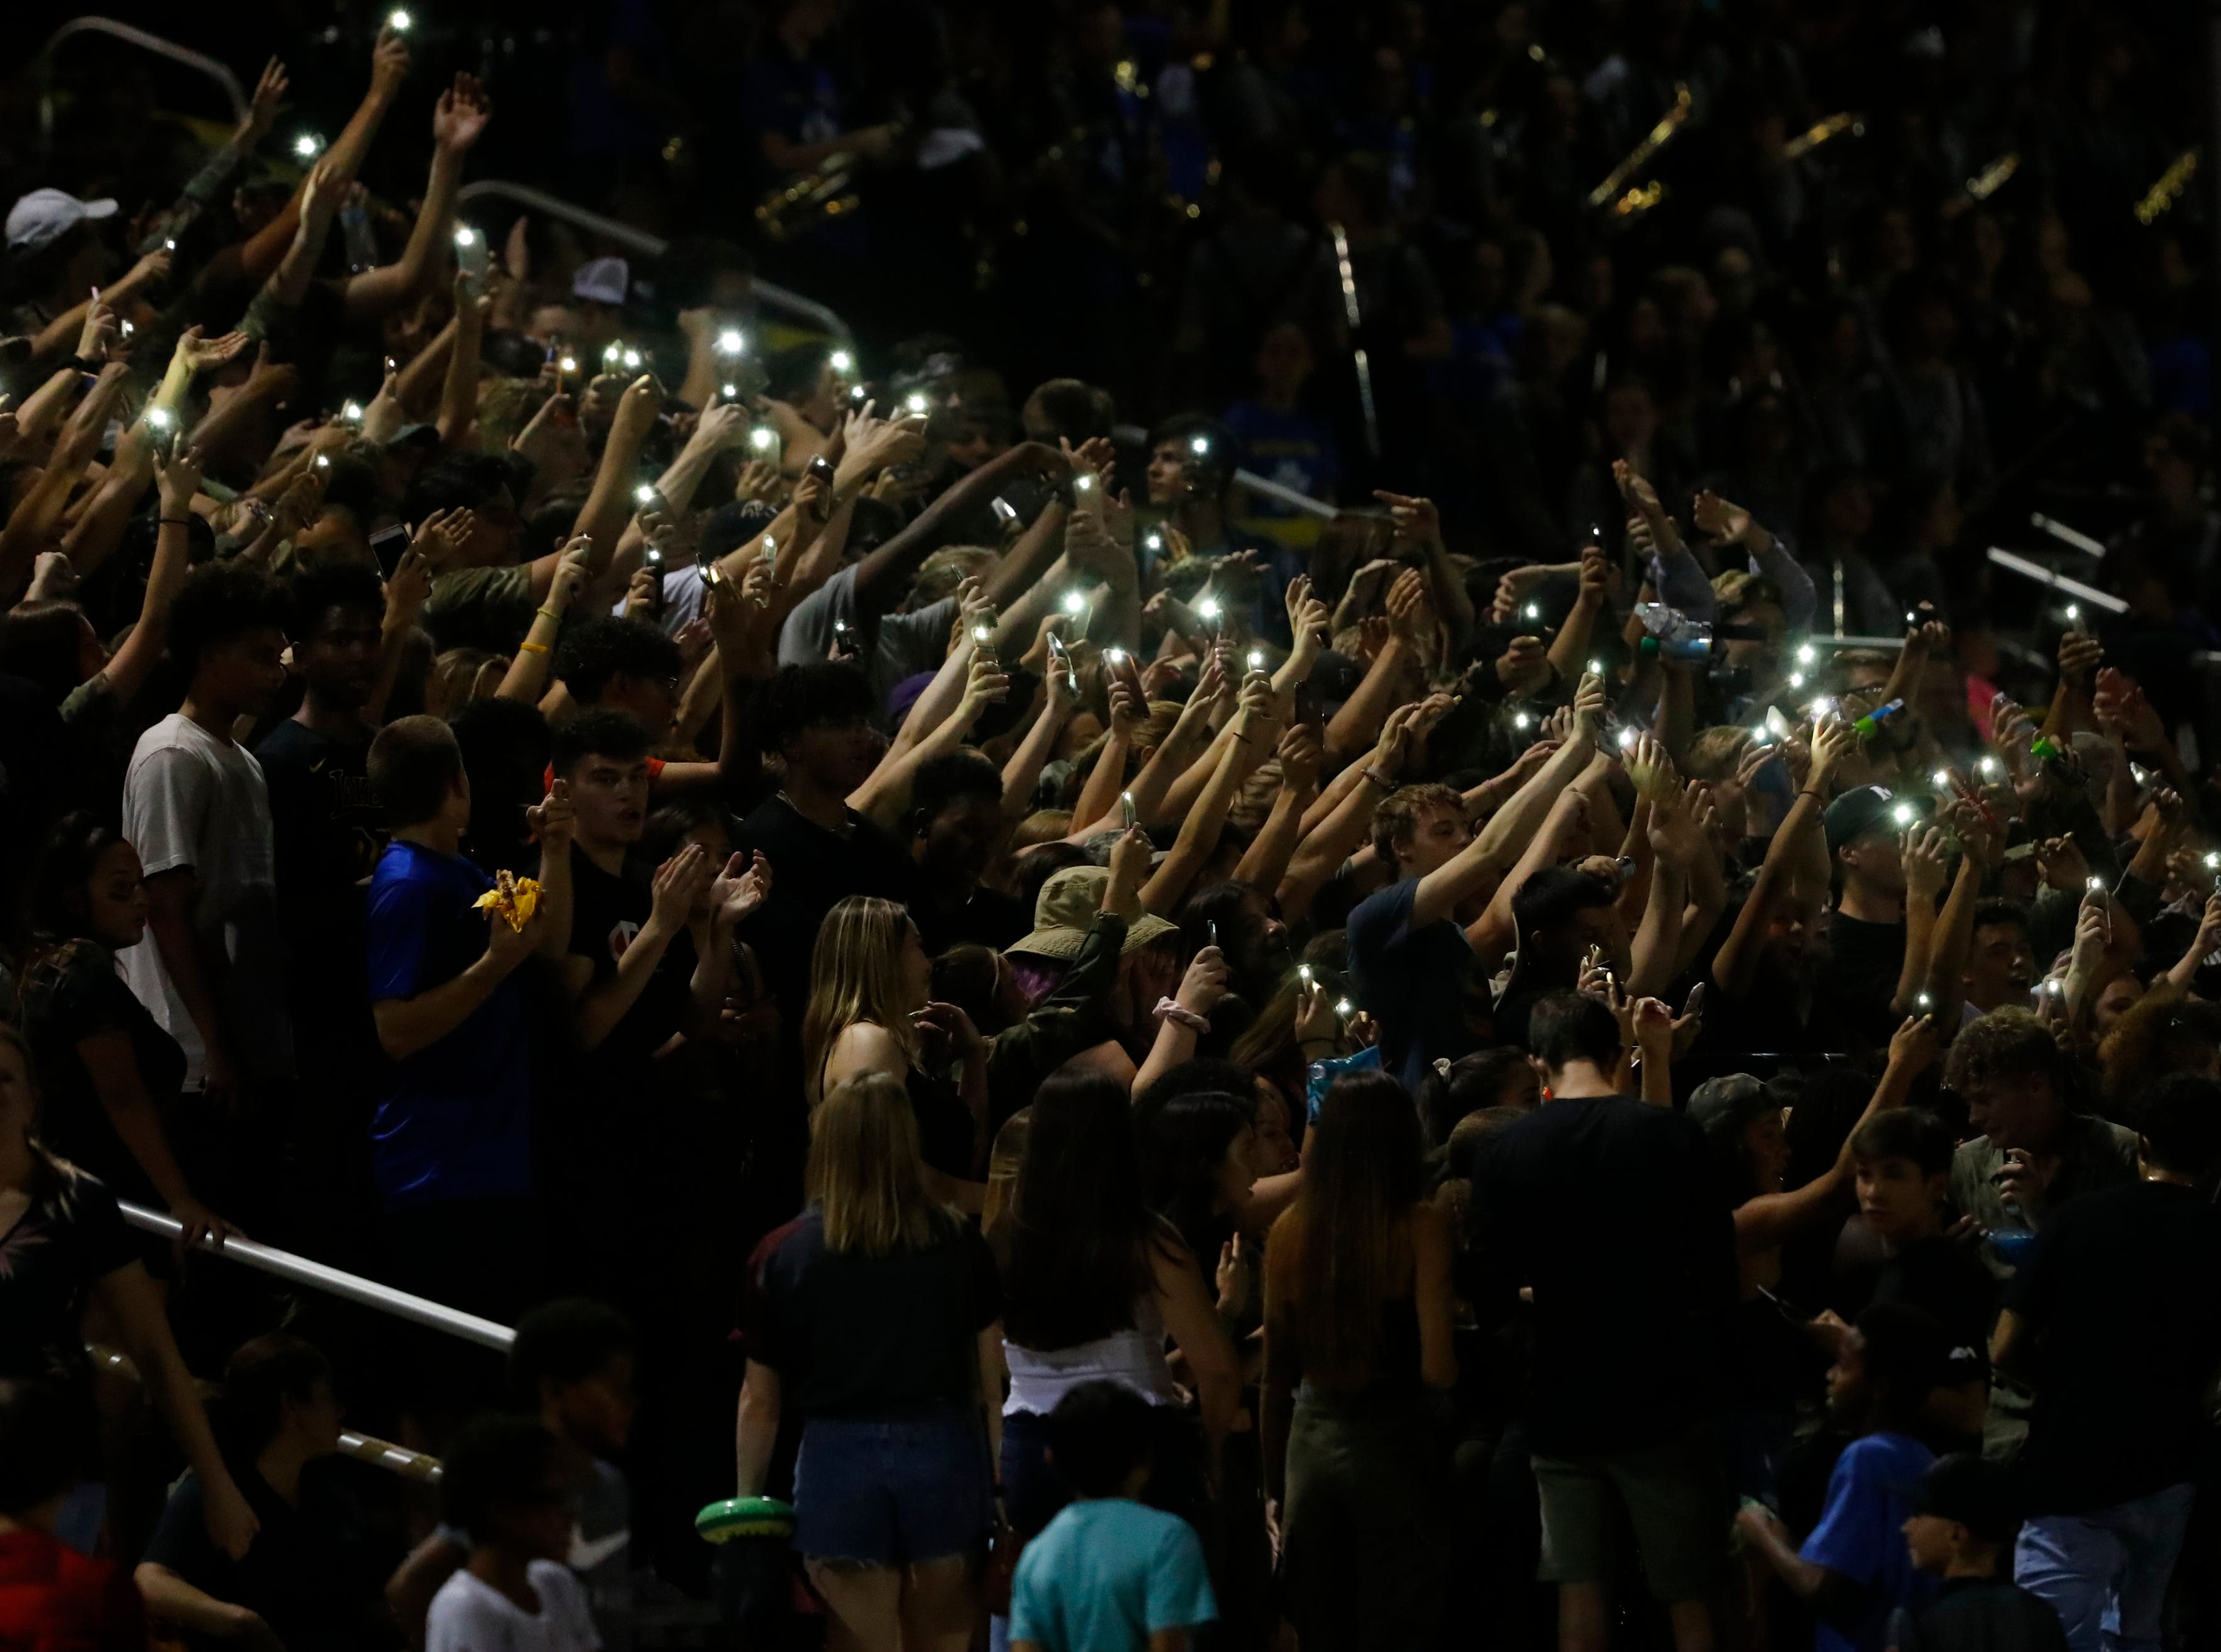 Millennium fans use their phones for lights as they chant during a game against Desert Edge at Millennium High School in Goodyear, Ariz. on Sept. 7, 2018.